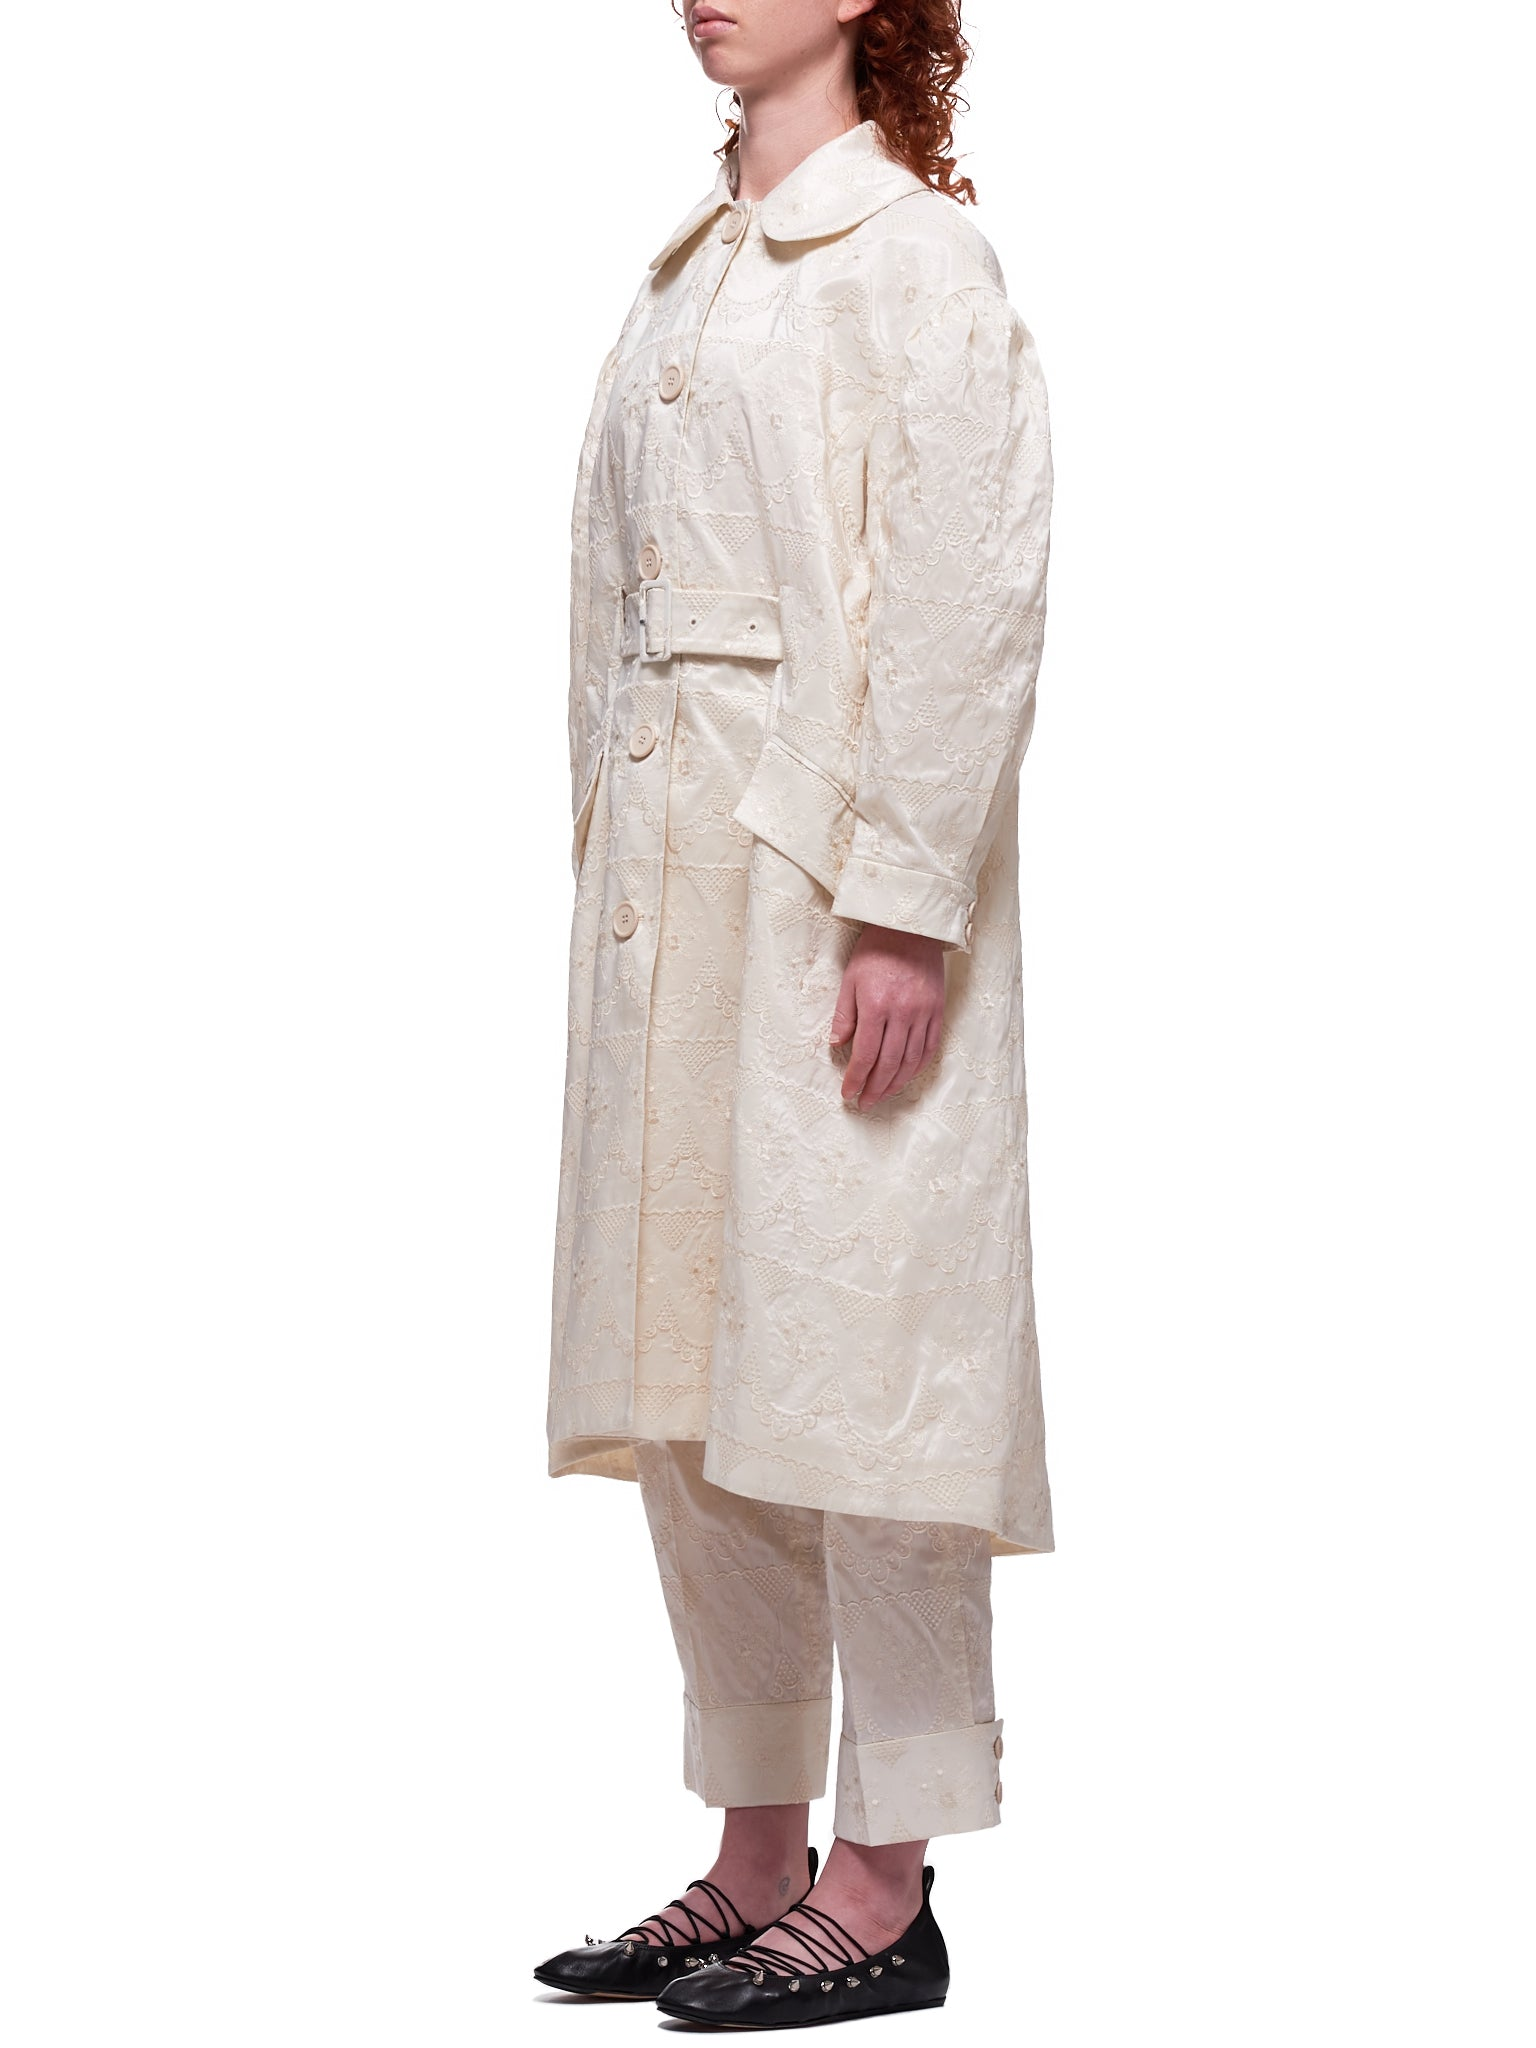 Lace Taffeta Duster Coat (3286-0349-ECRU)